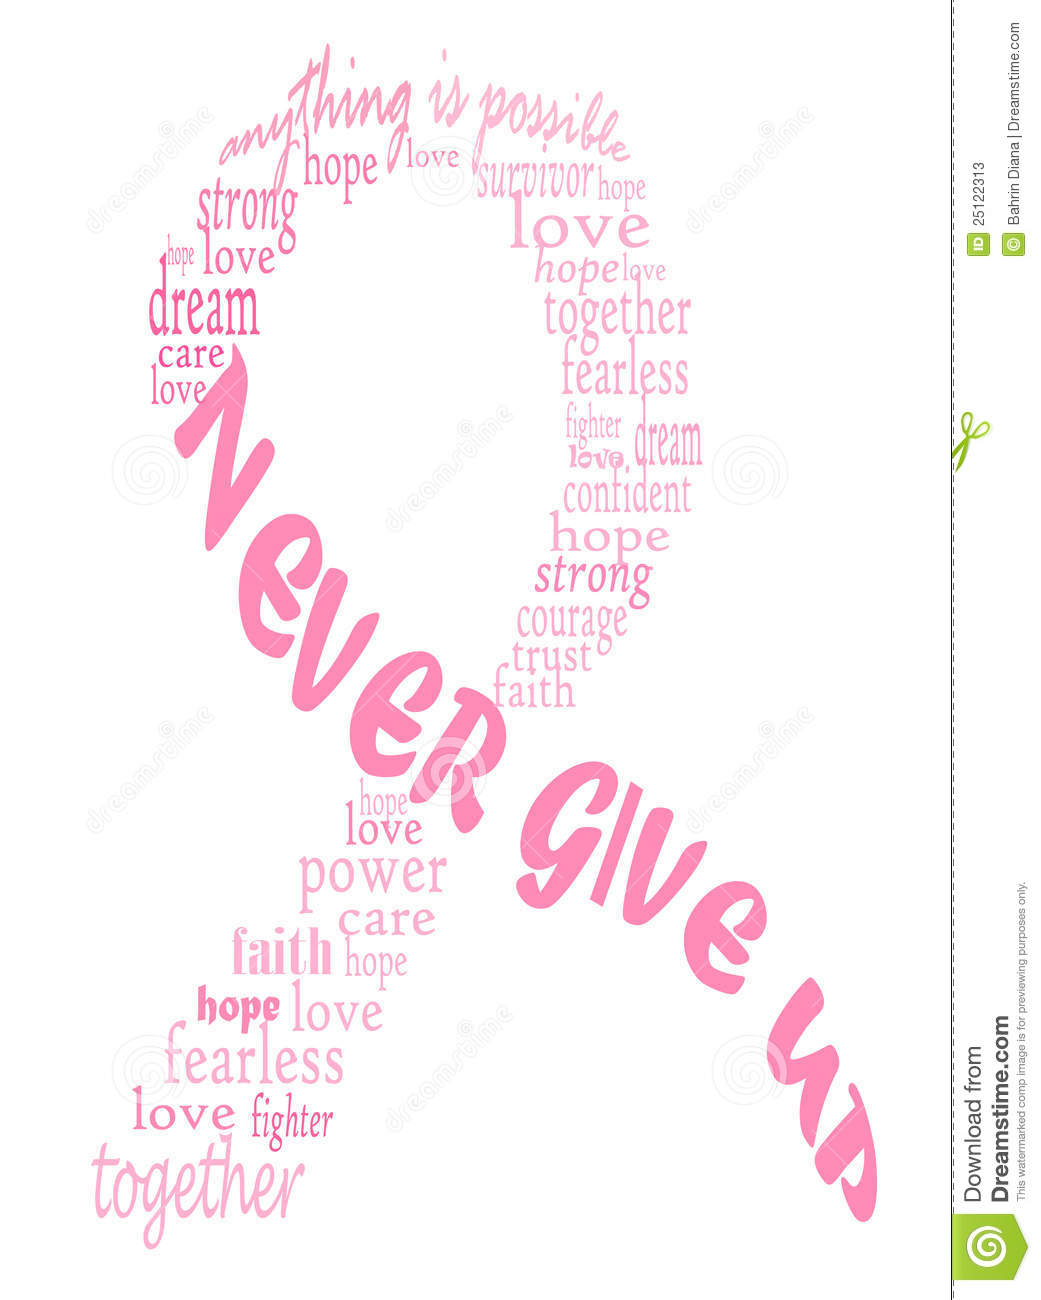 More similar stock images of ` Pink breast cancer ribbon `